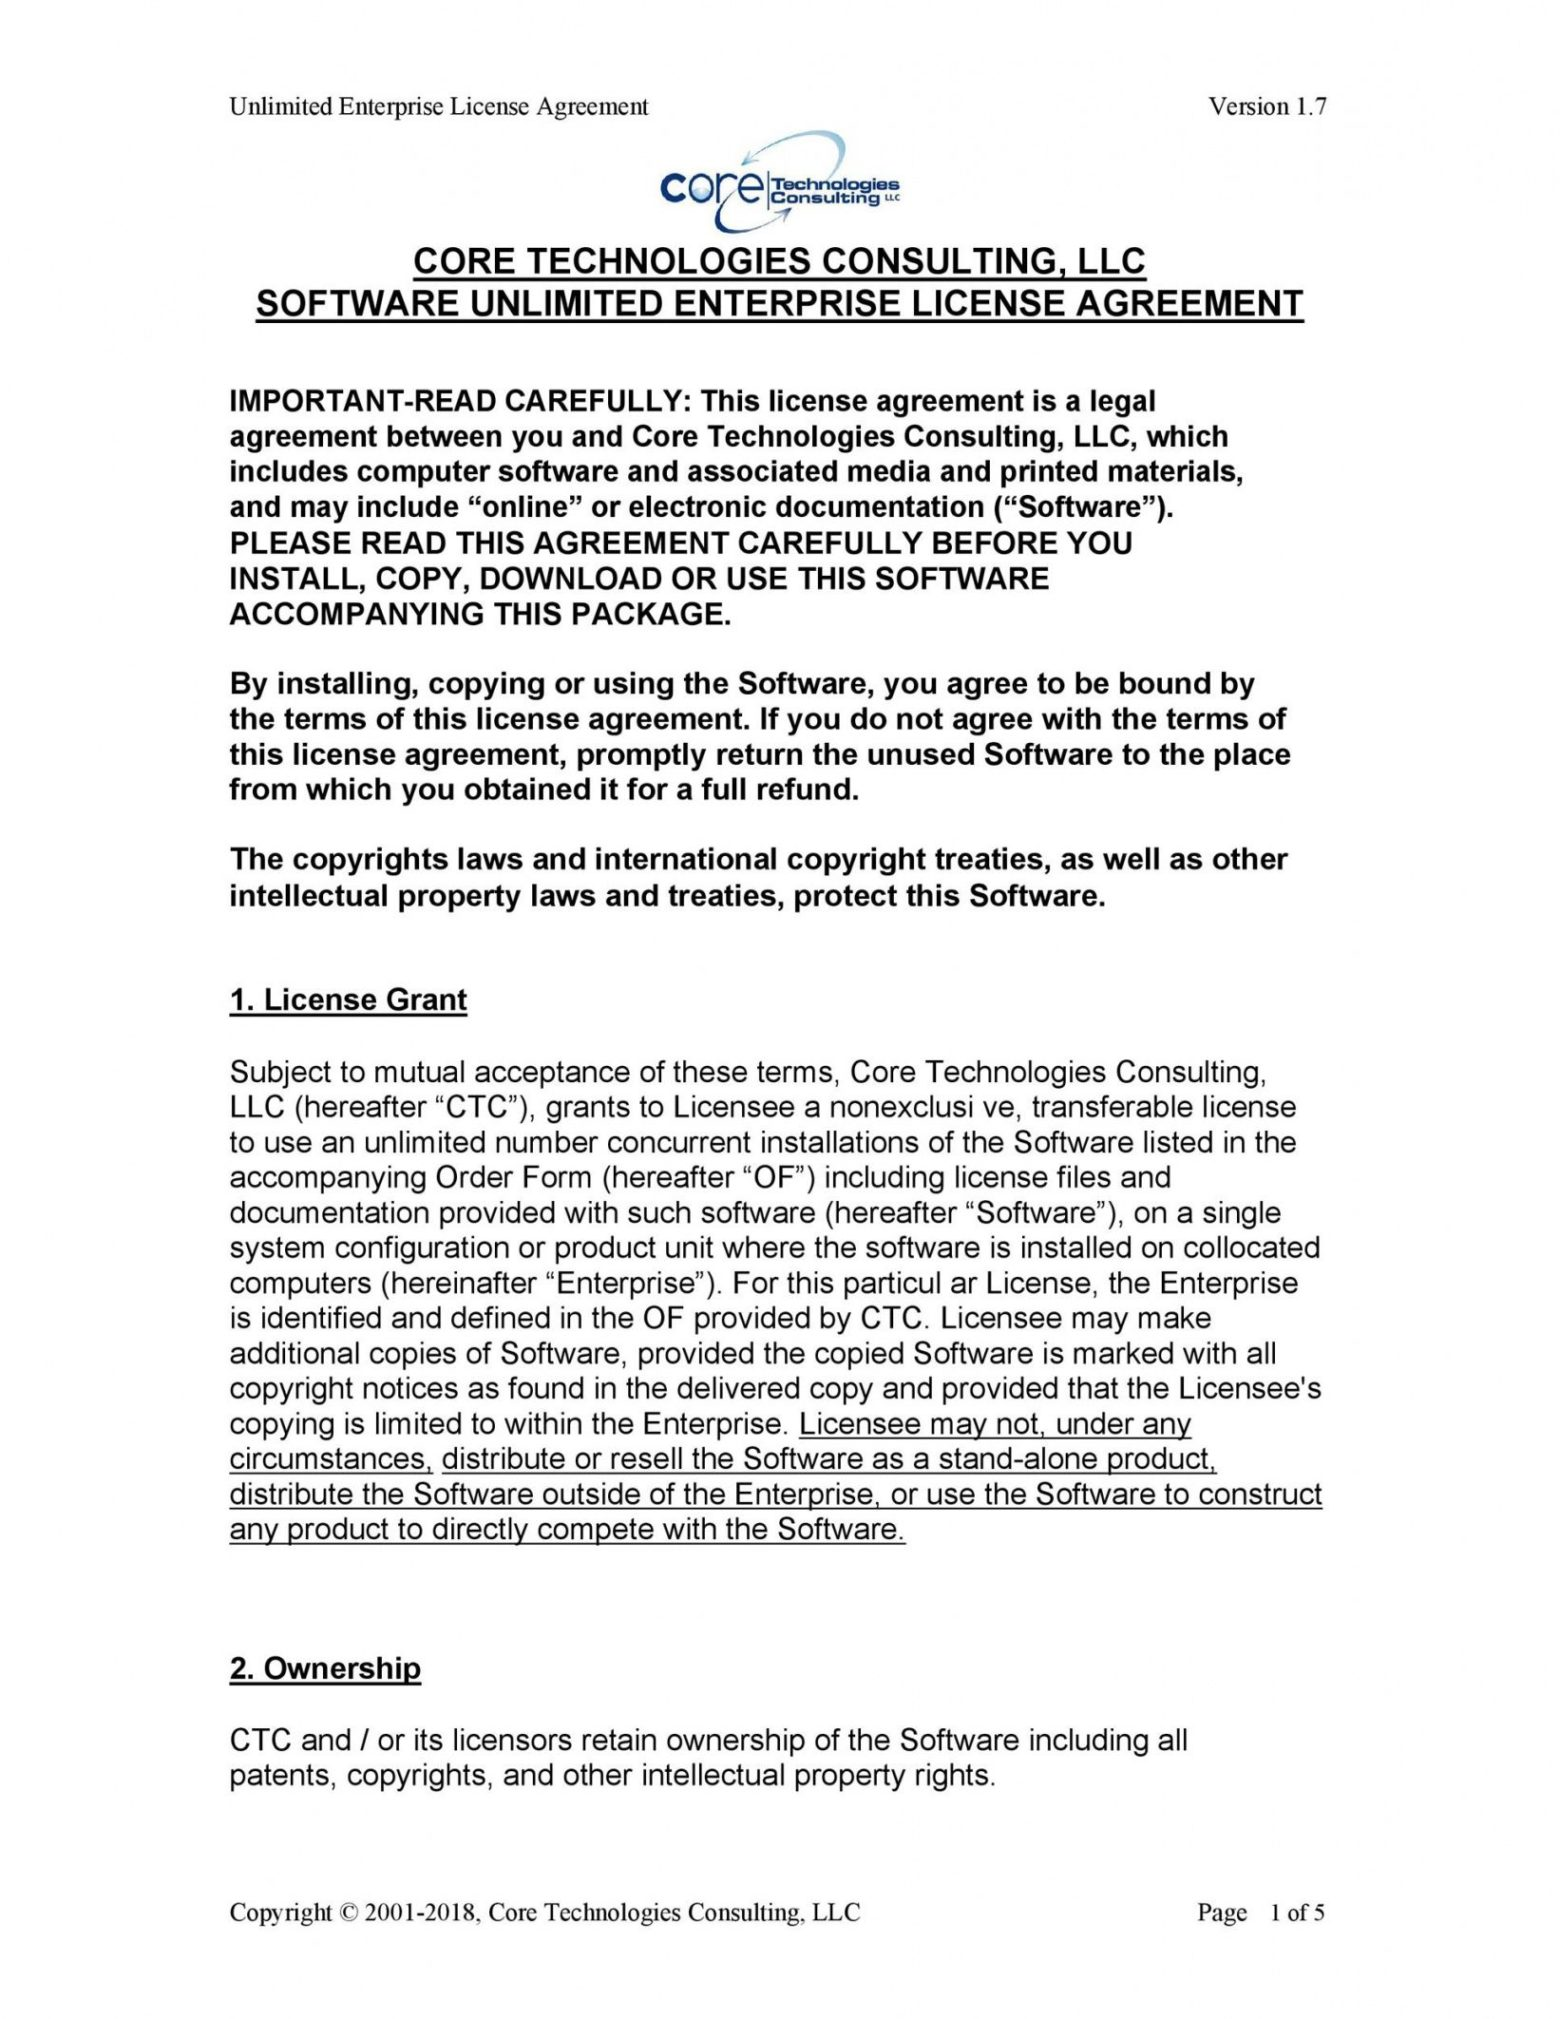 Enterprise License Agreement Template